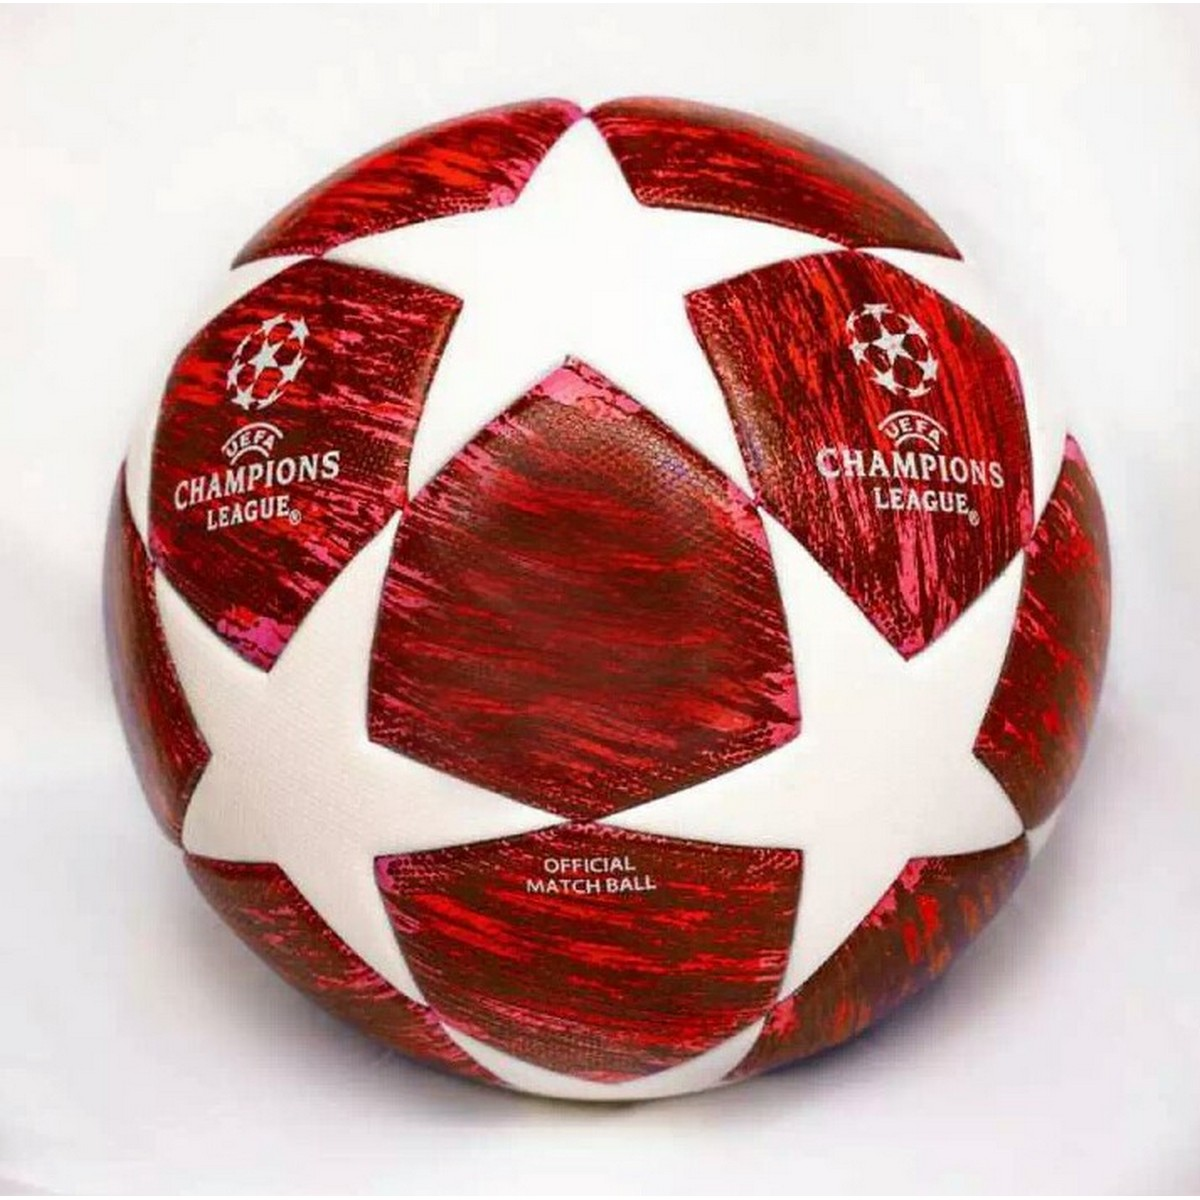 Champions League (RED EDITION) 100% Highest-Quality Thermal  Football